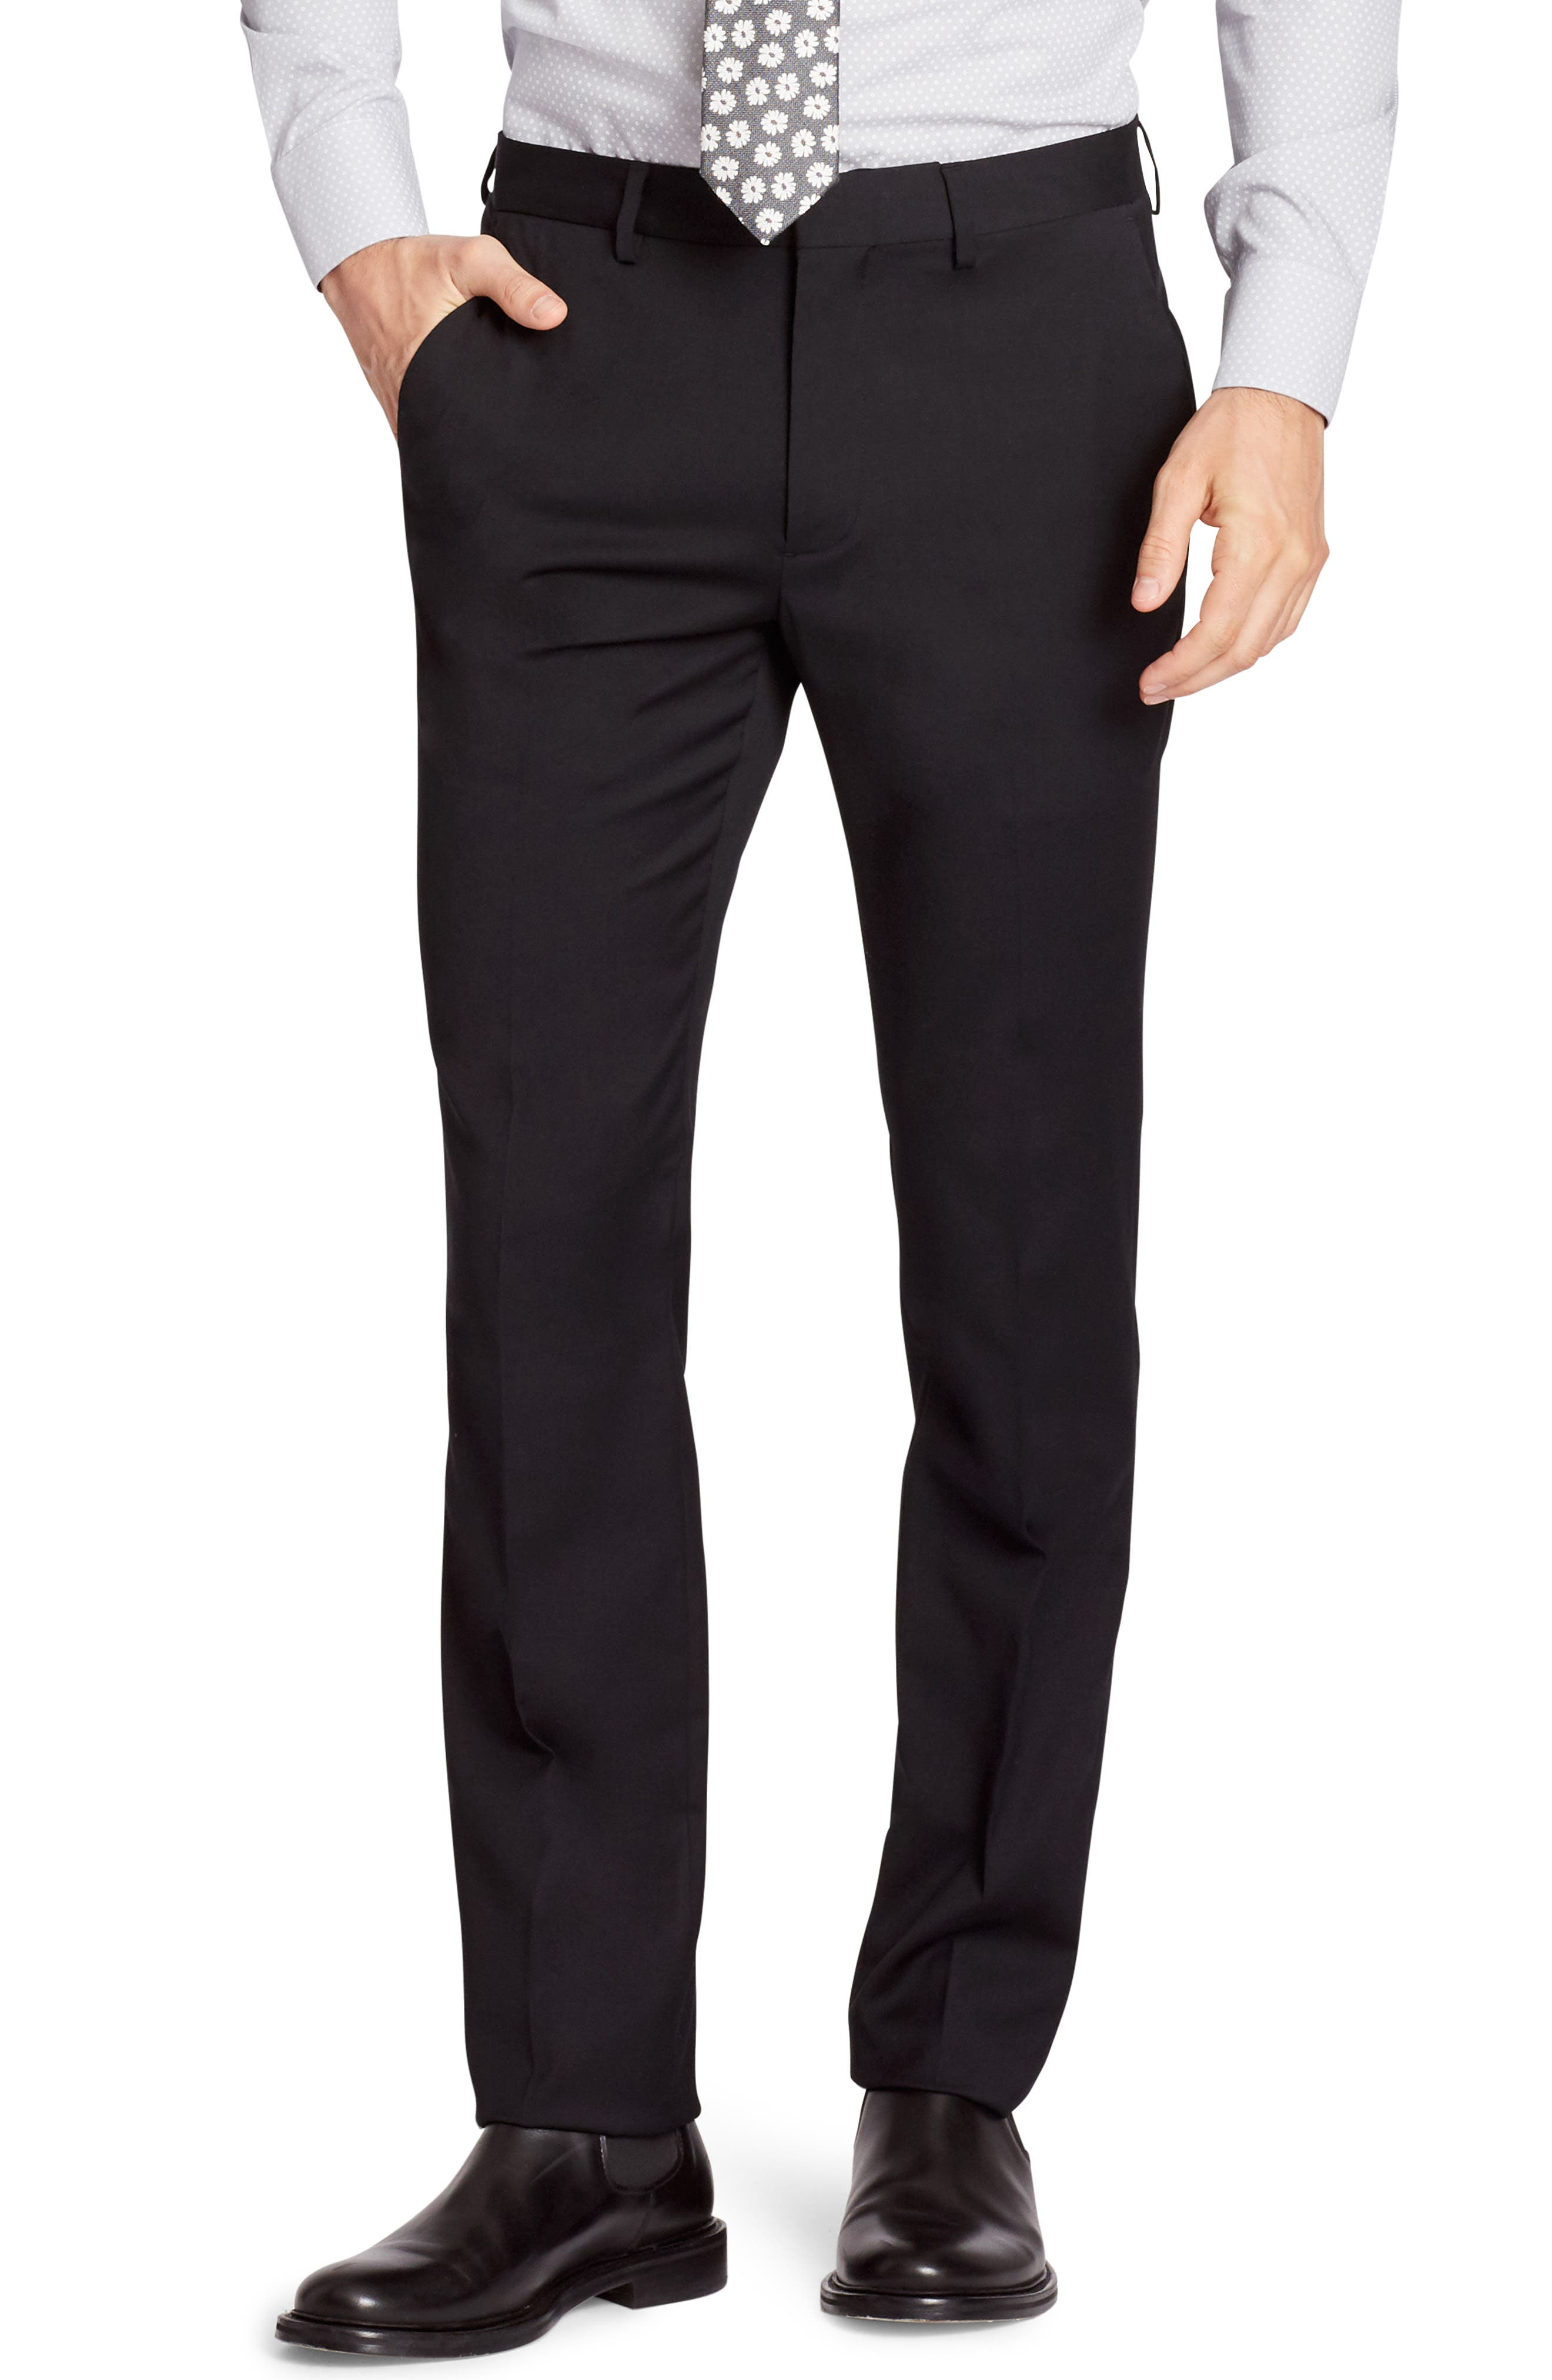 Alternate Image 1 Selected - Bonobos Jetsetter Flat Front Stretch Wool Trousers (Tall)